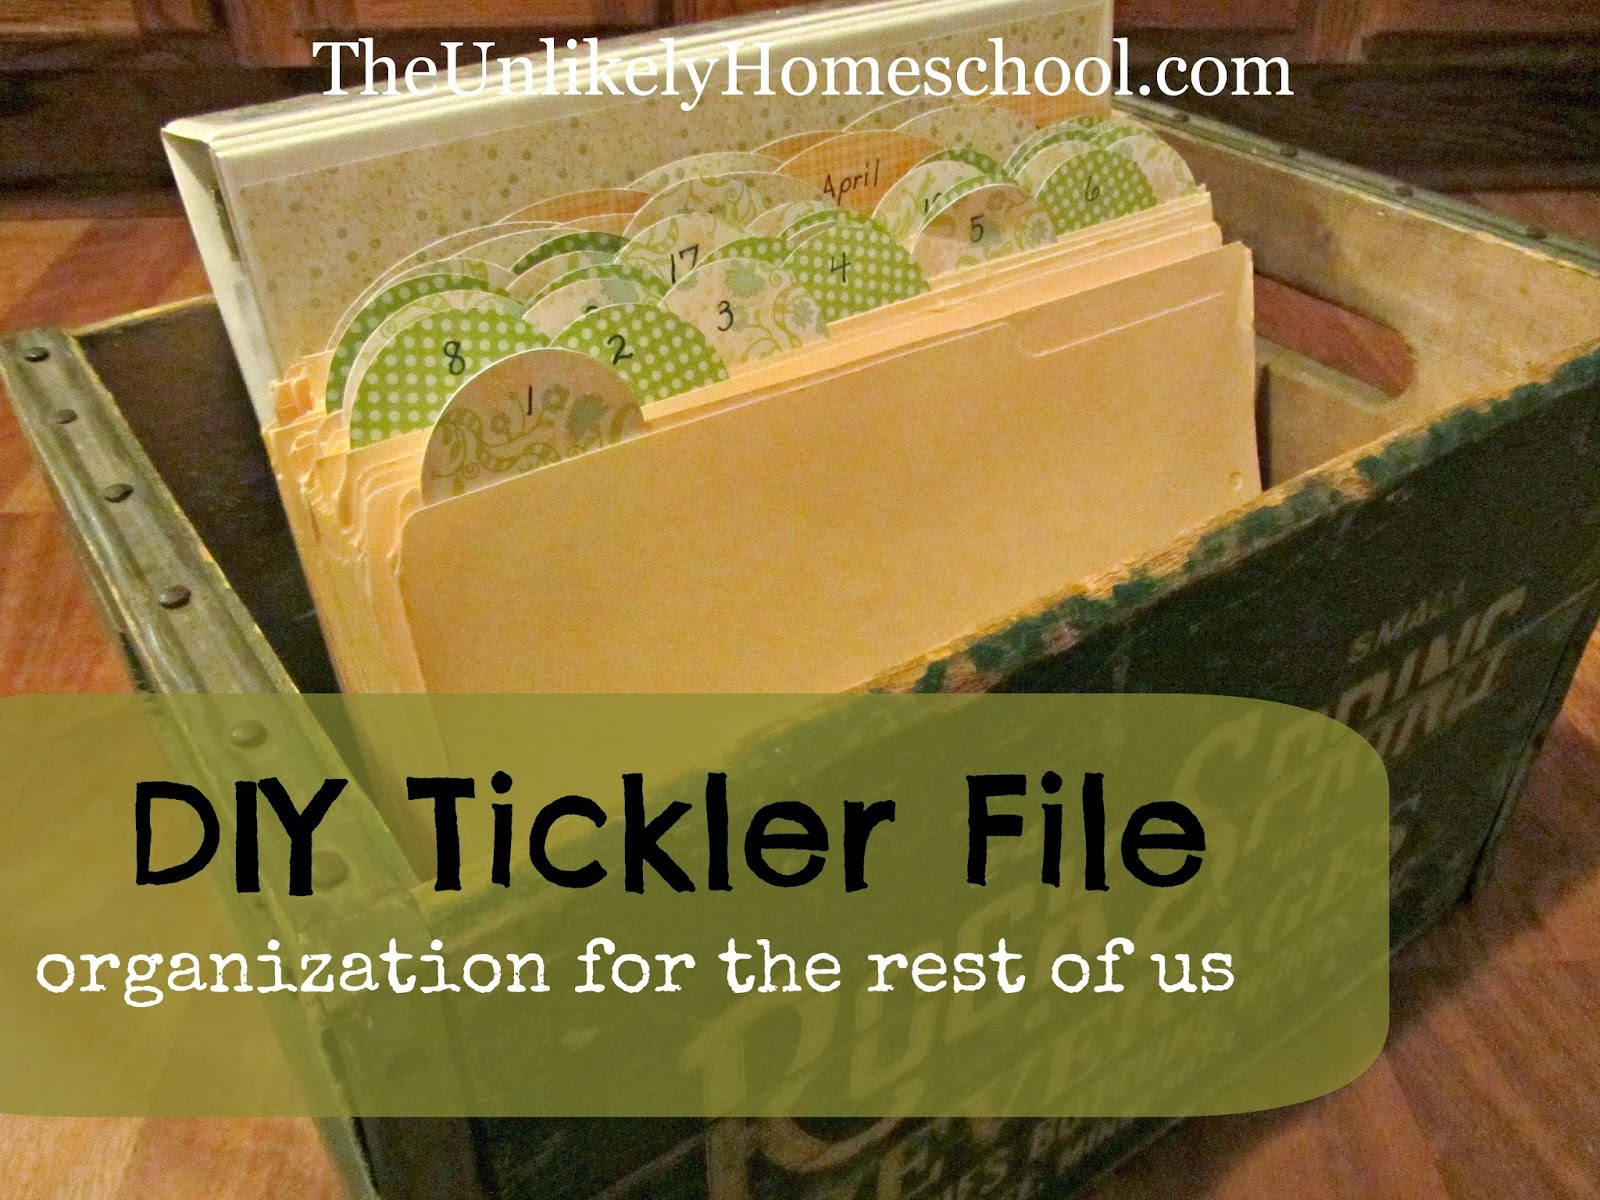 DIY Tickler File: Organization for the Rest of Us {The Unlikely Homeschool}